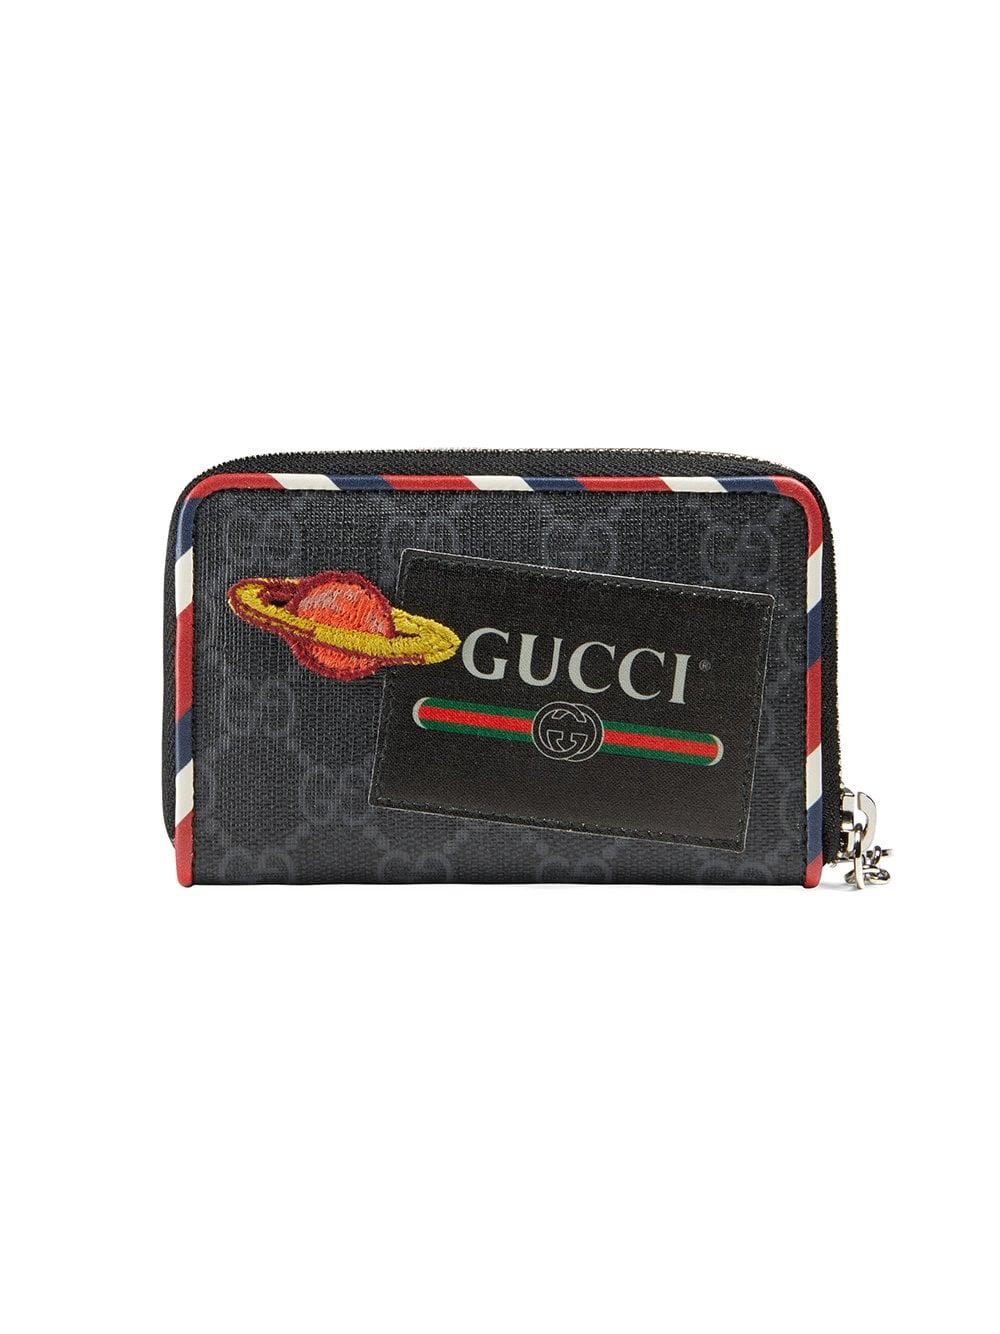 3ab1f9e751a5 Lyst - Gucci Night Courrier GG Supreme Card Case in Black for Men